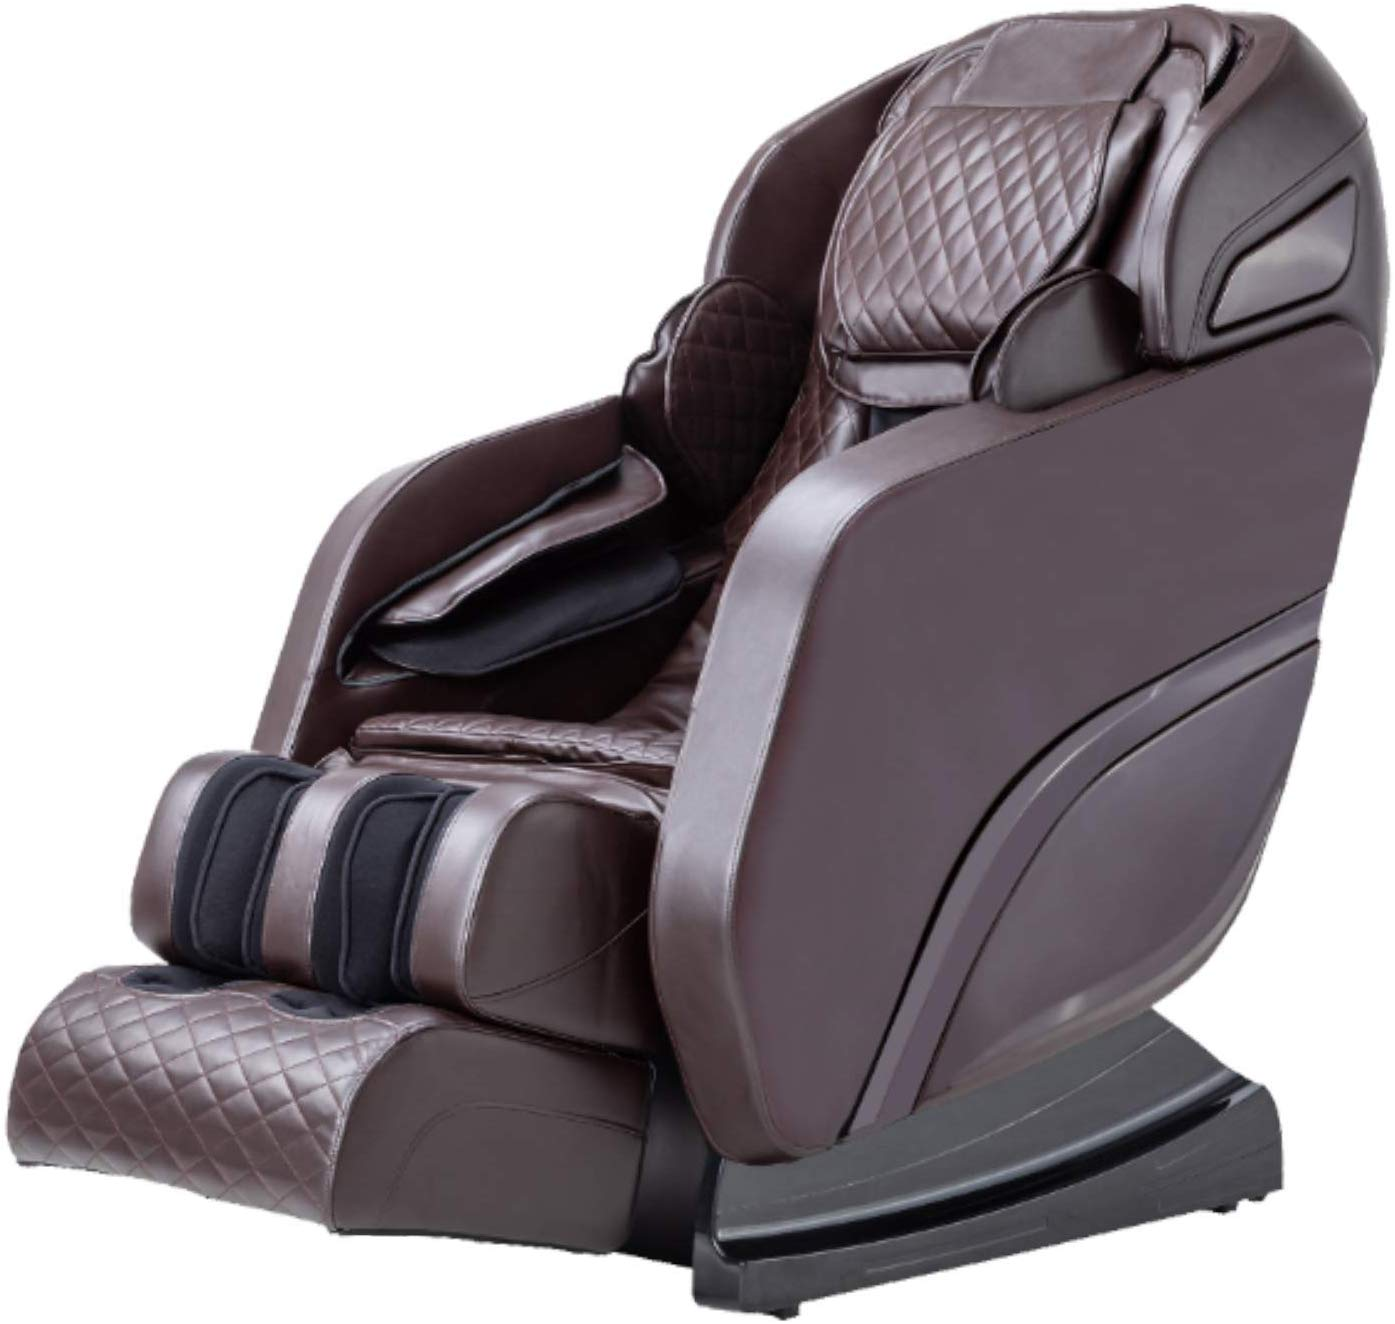 Ootori SL001 Massage Chair